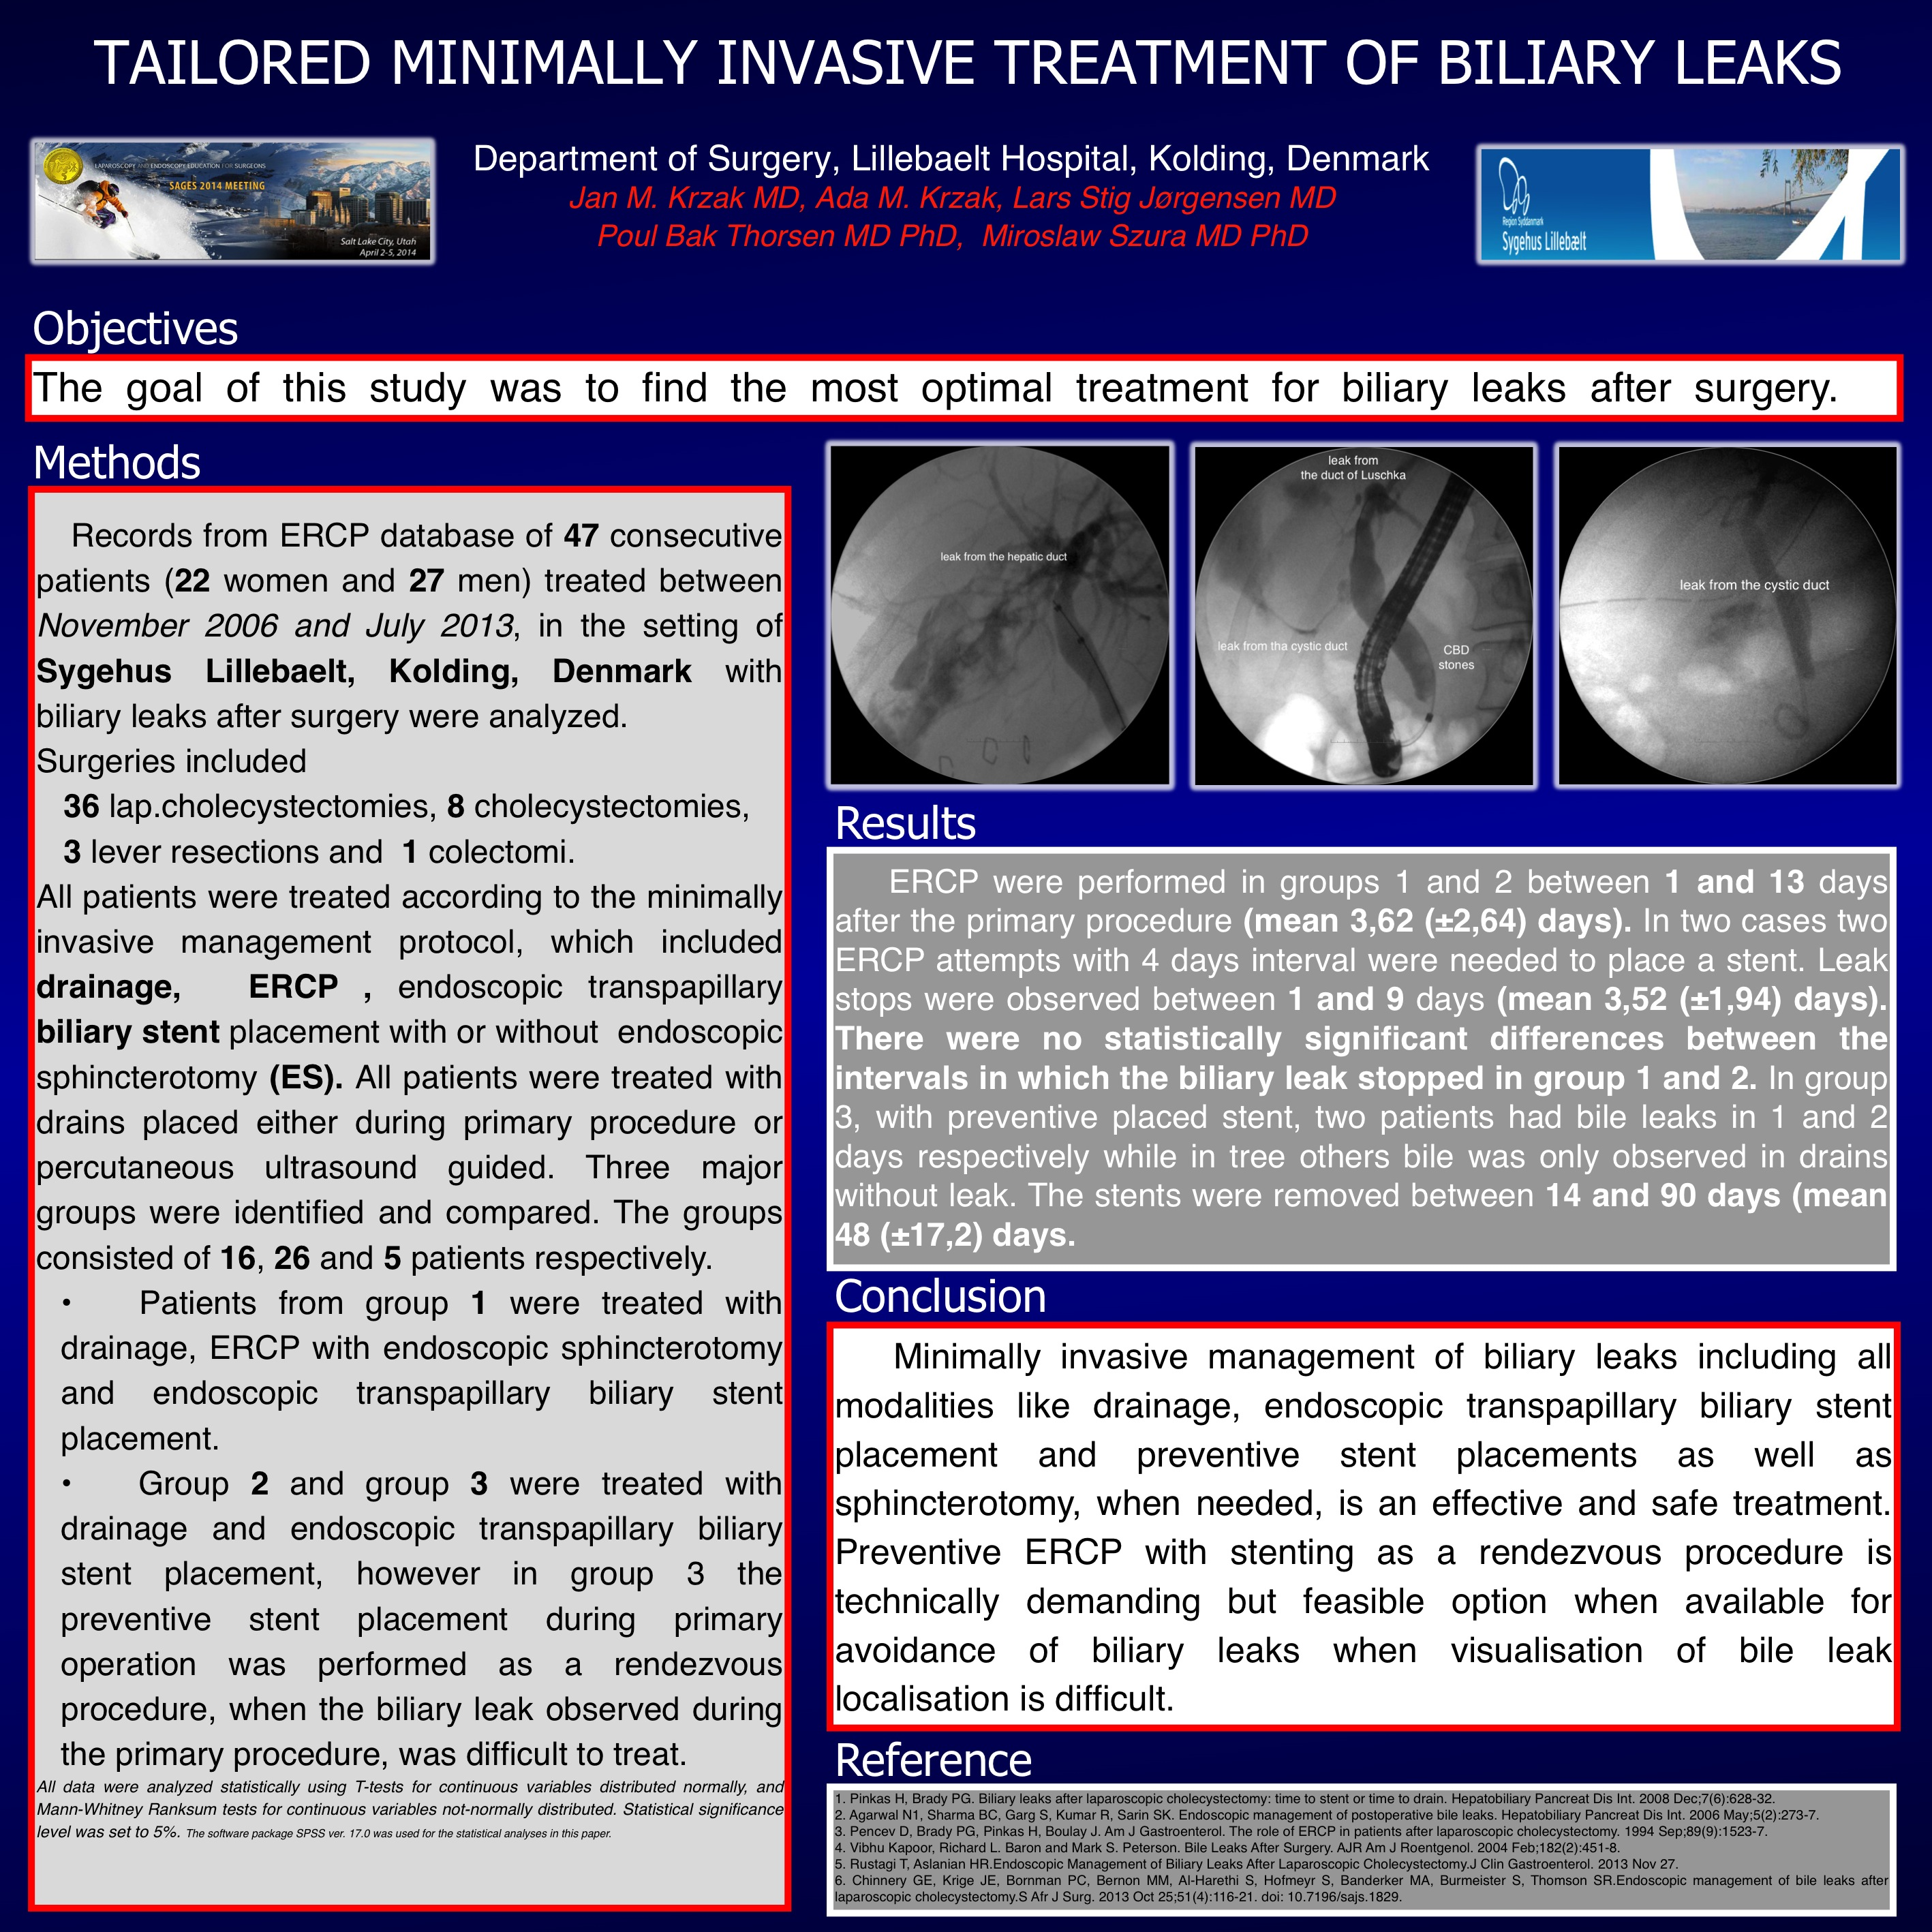 Tailored Minimally Invasive Treatment Of Biliary Leaks